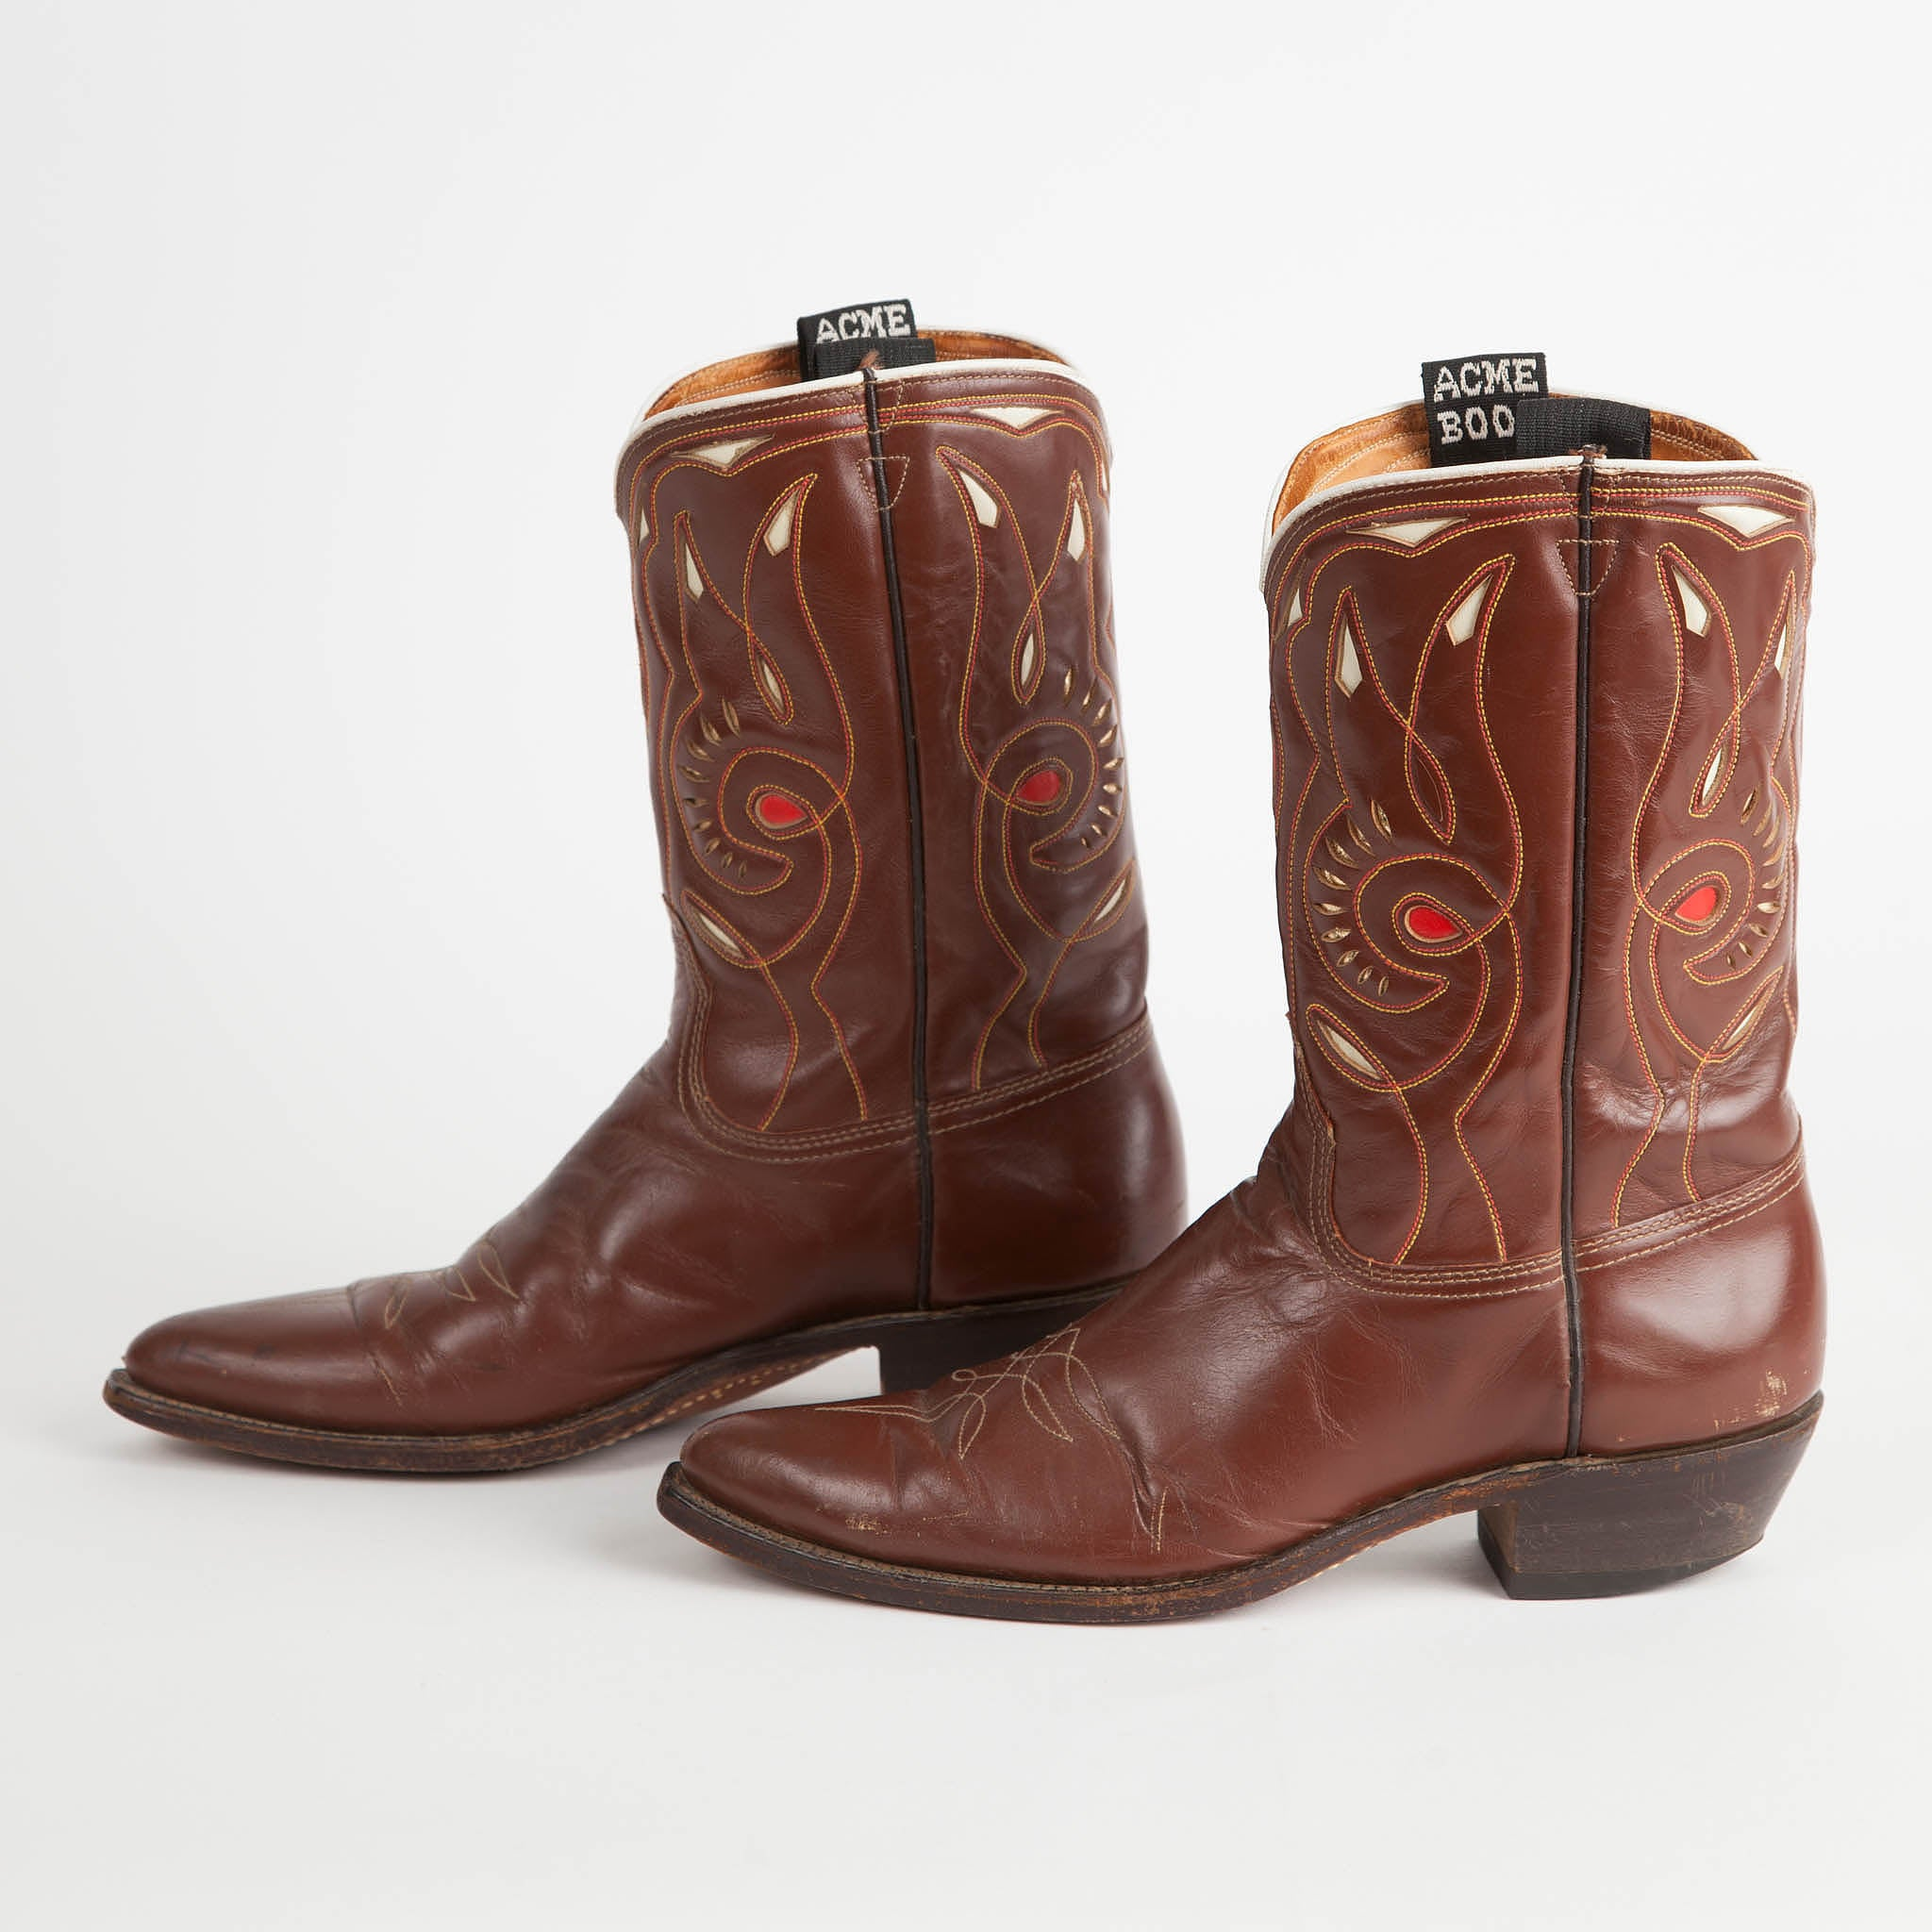 5a13494431d Vintage Acme Pee Wee Shorty Cowboy Boots – Townsend Provisions